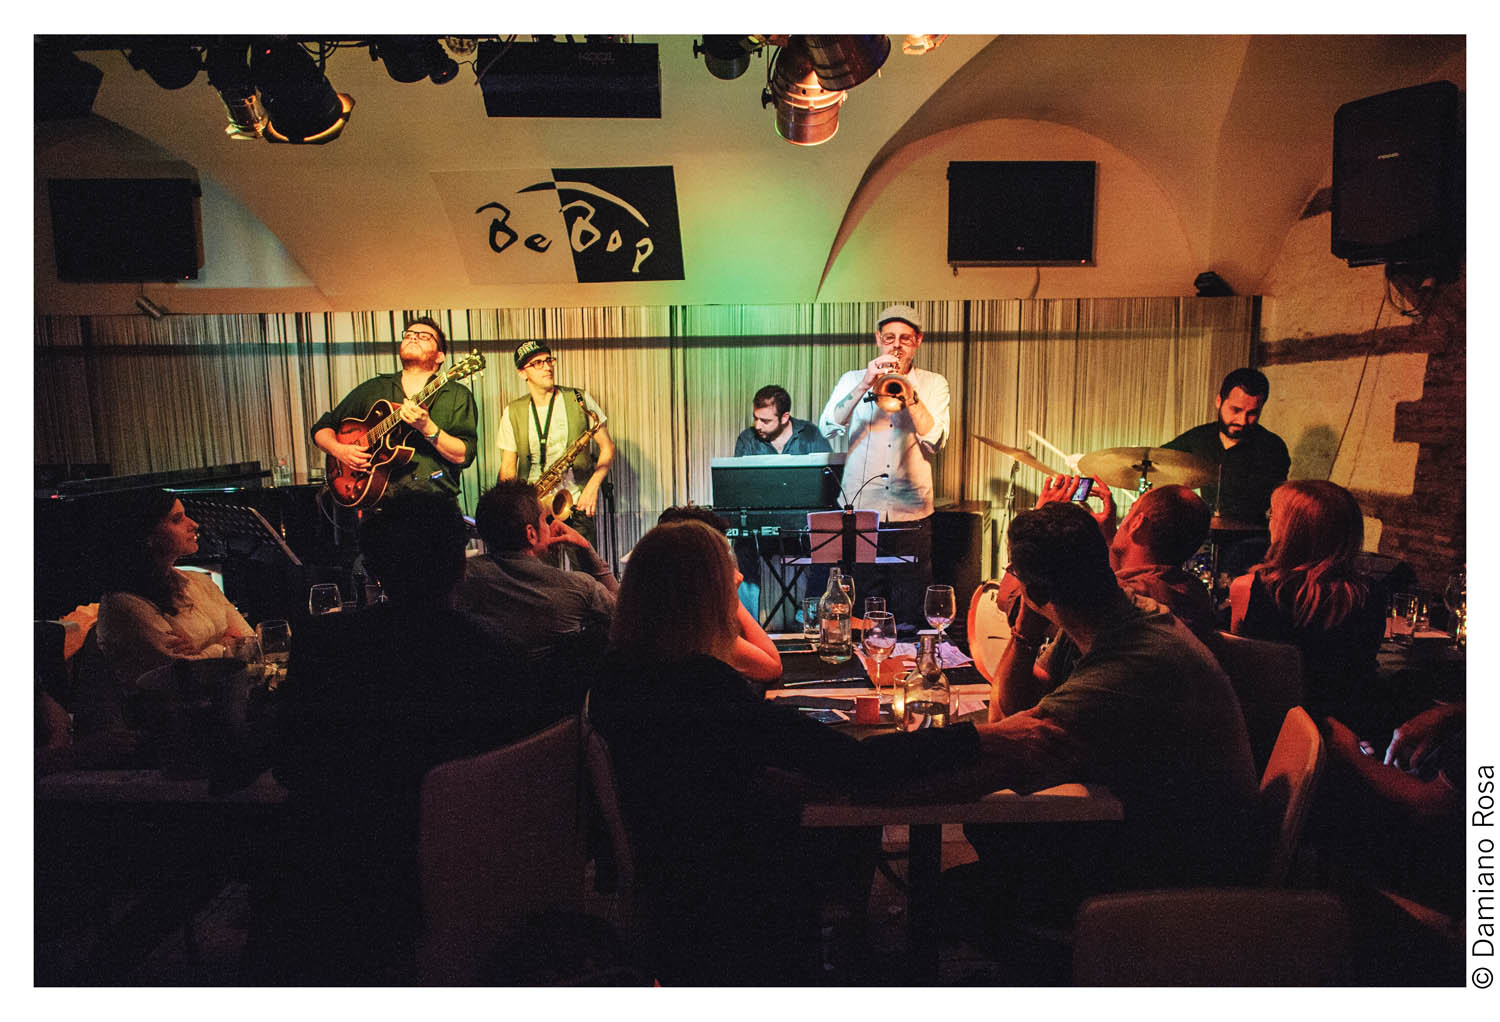 blue moka feat. fabrizio bosso at bebop jazz club rome